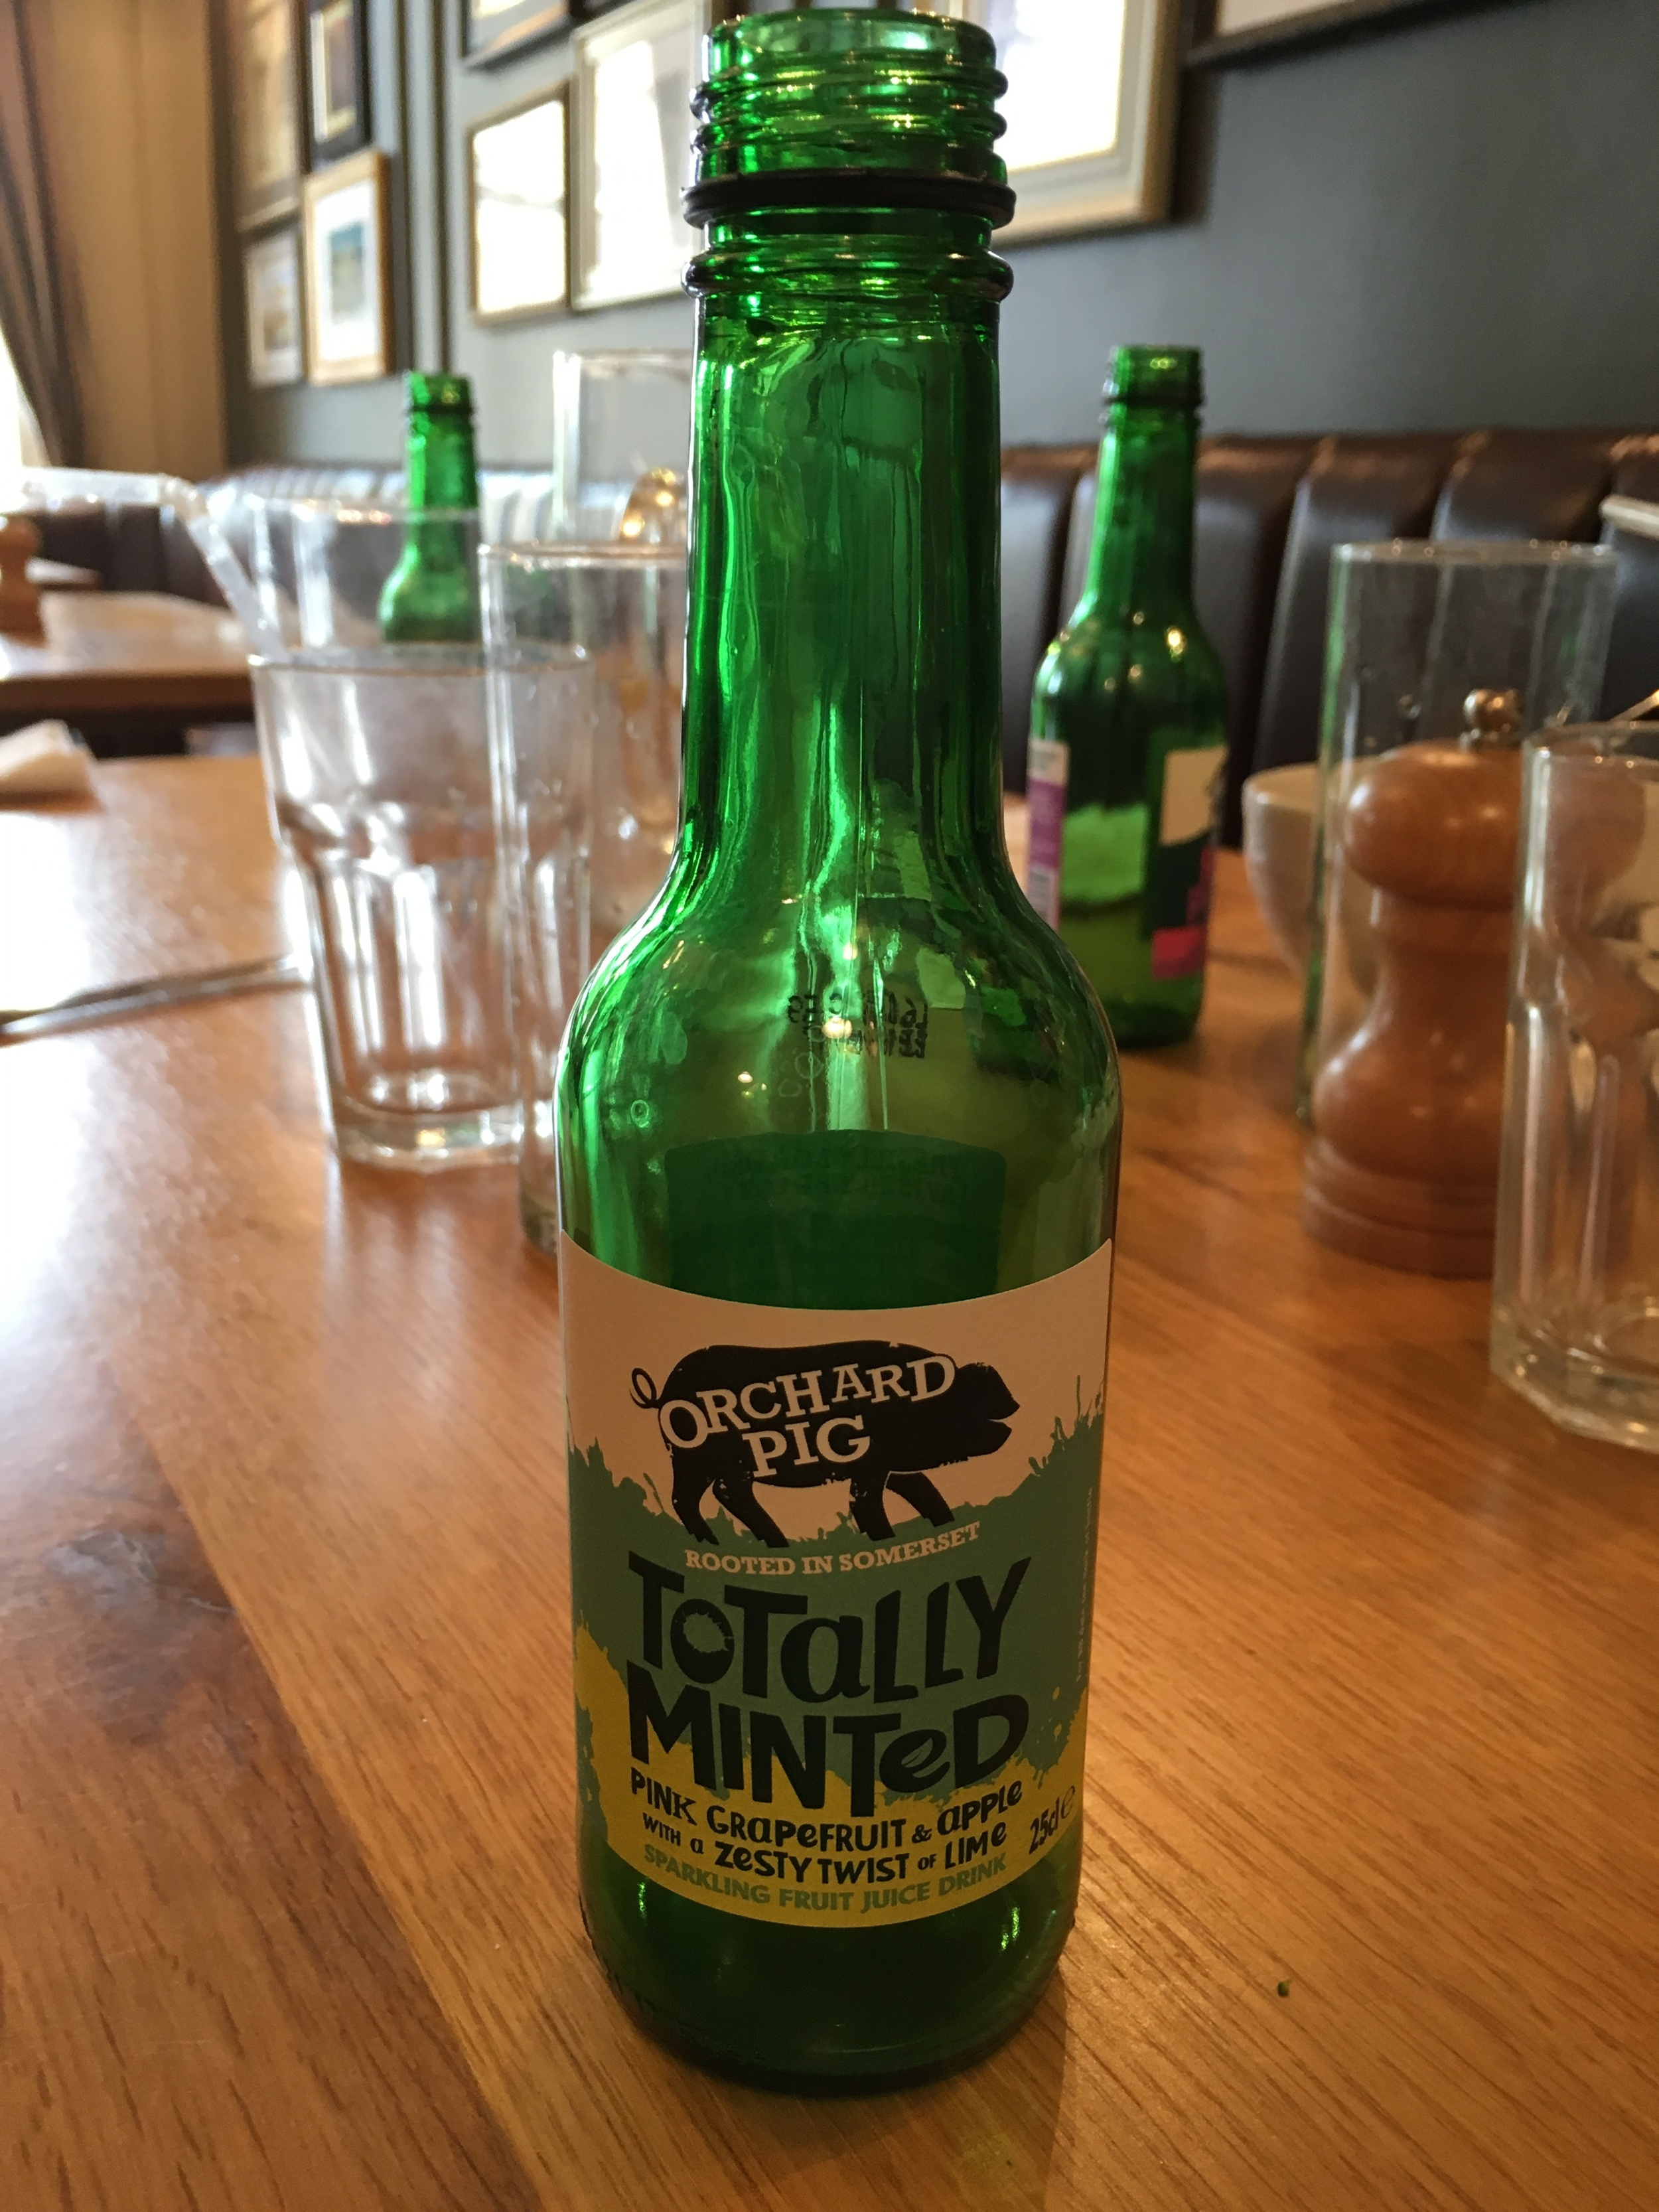 One of the Orchard Pig sodas.